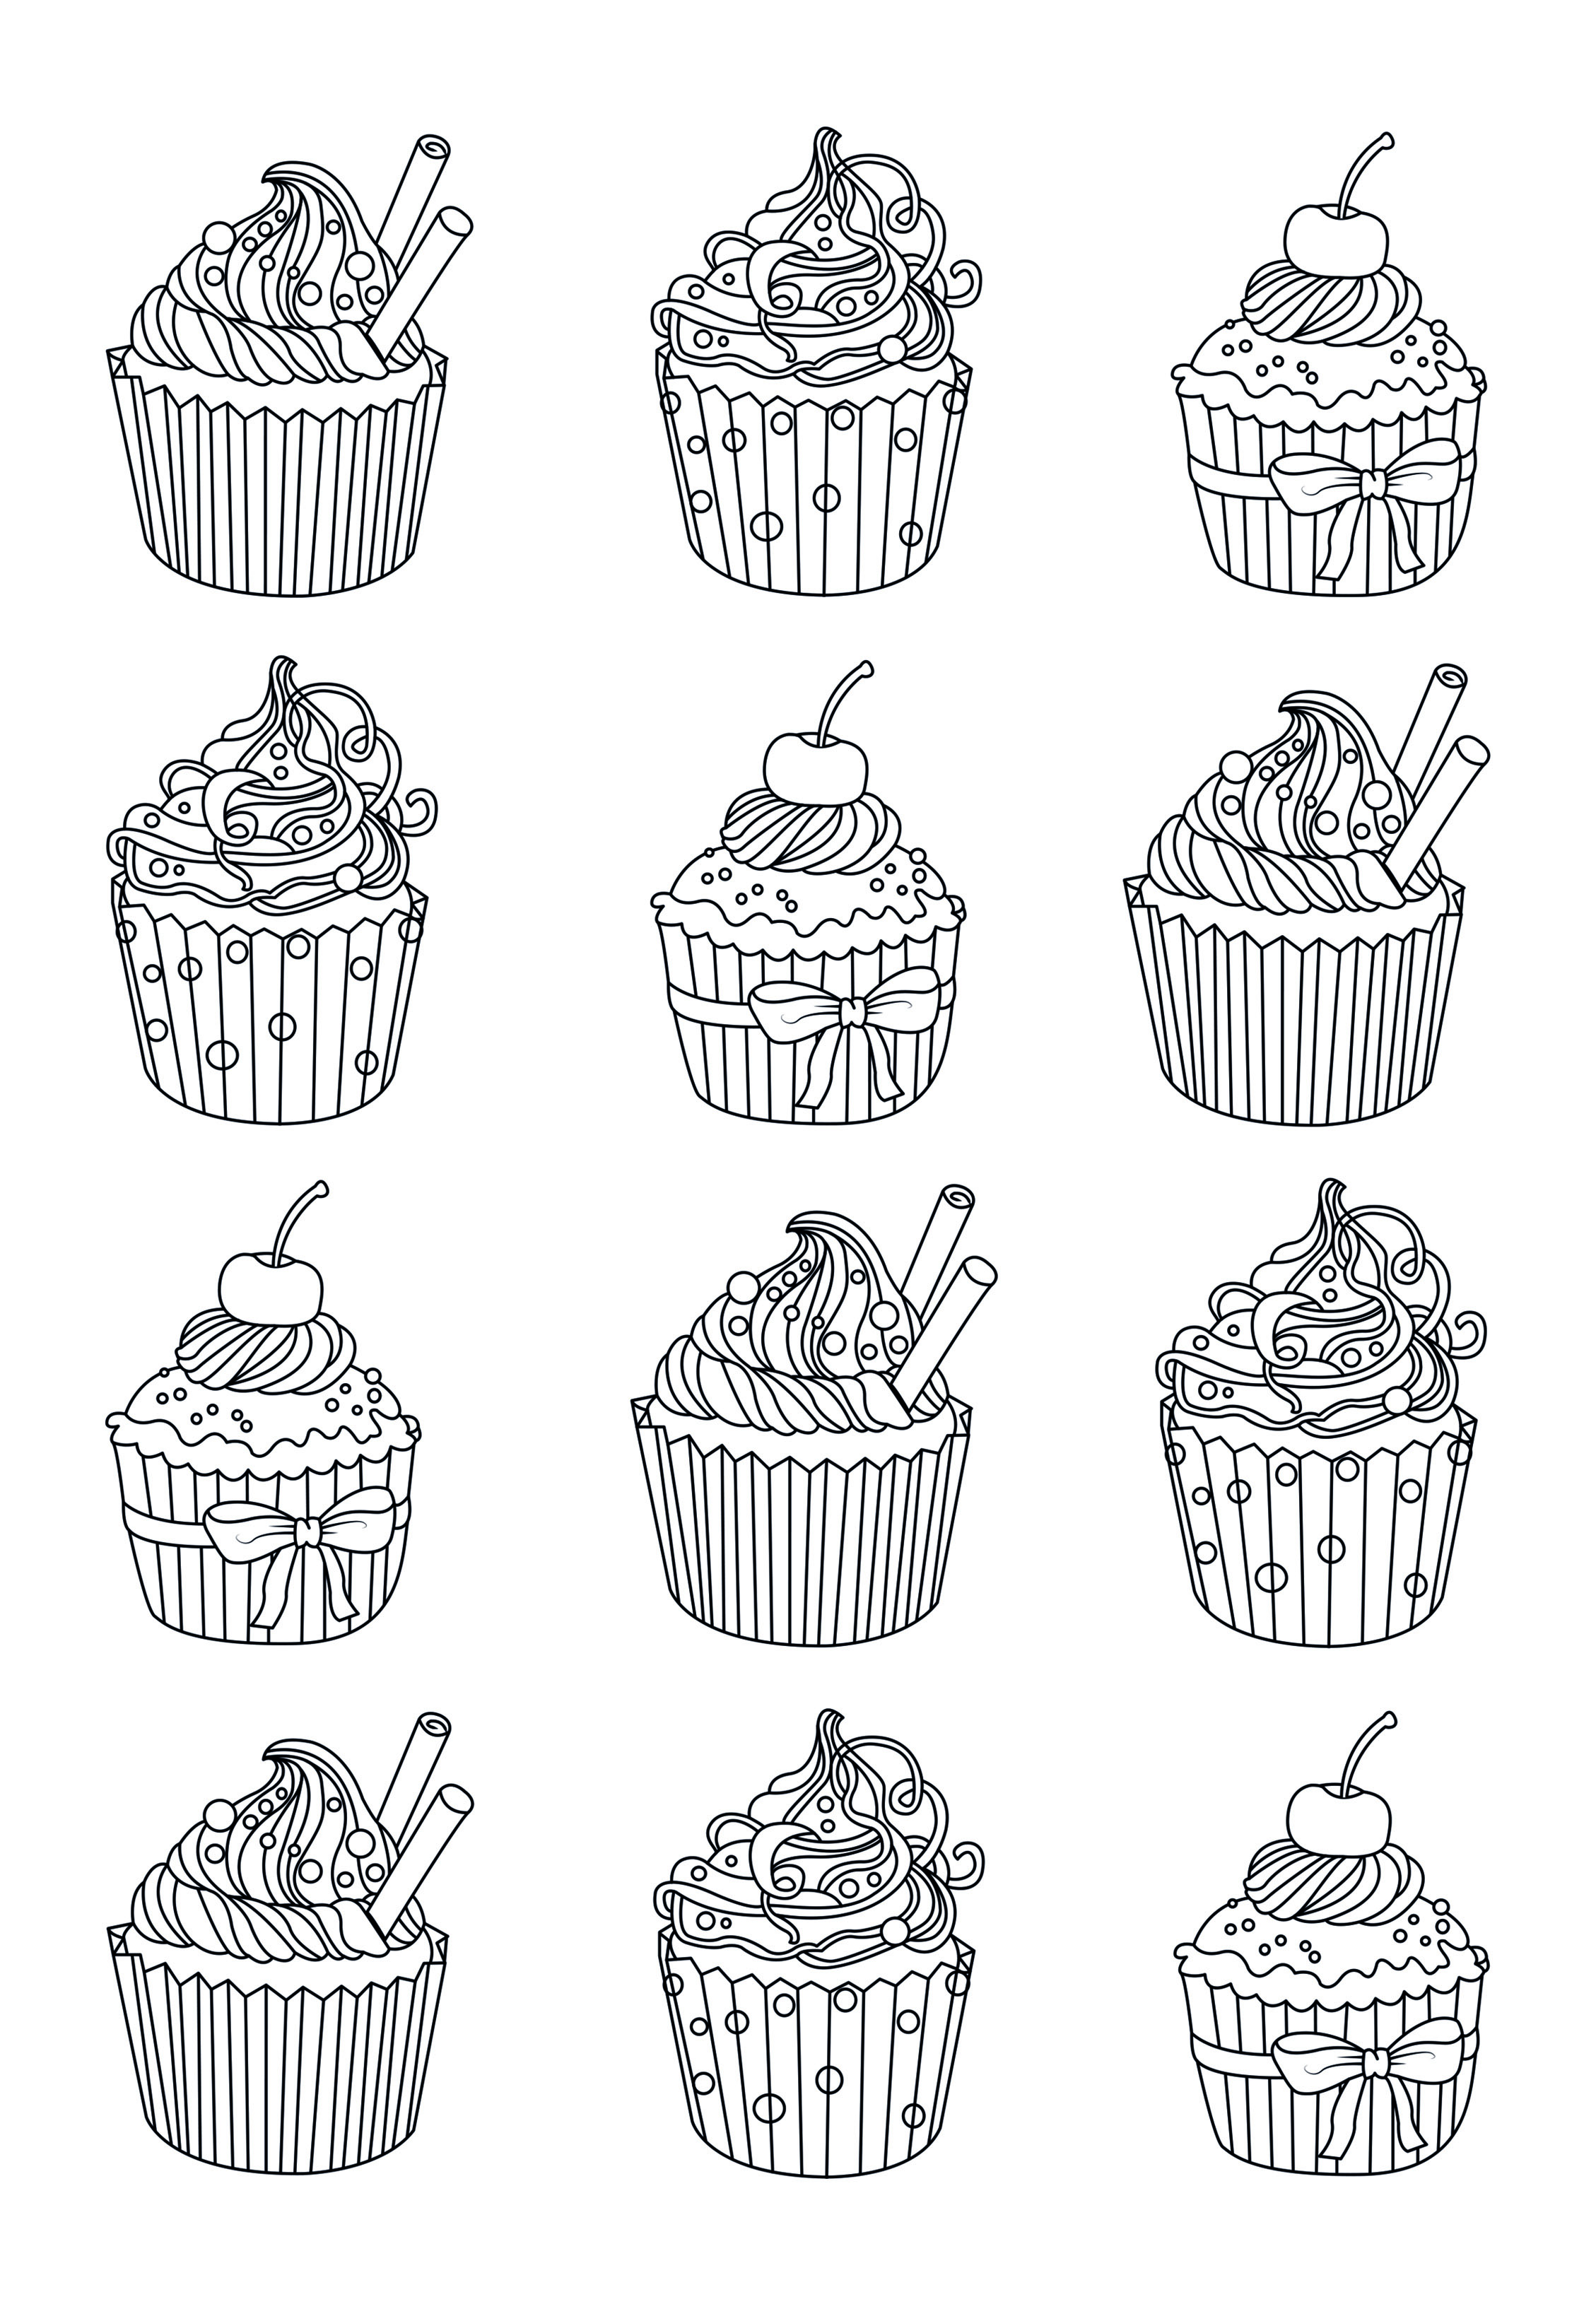 Yum-yum, many coloring page easy to colors ... and eat ?